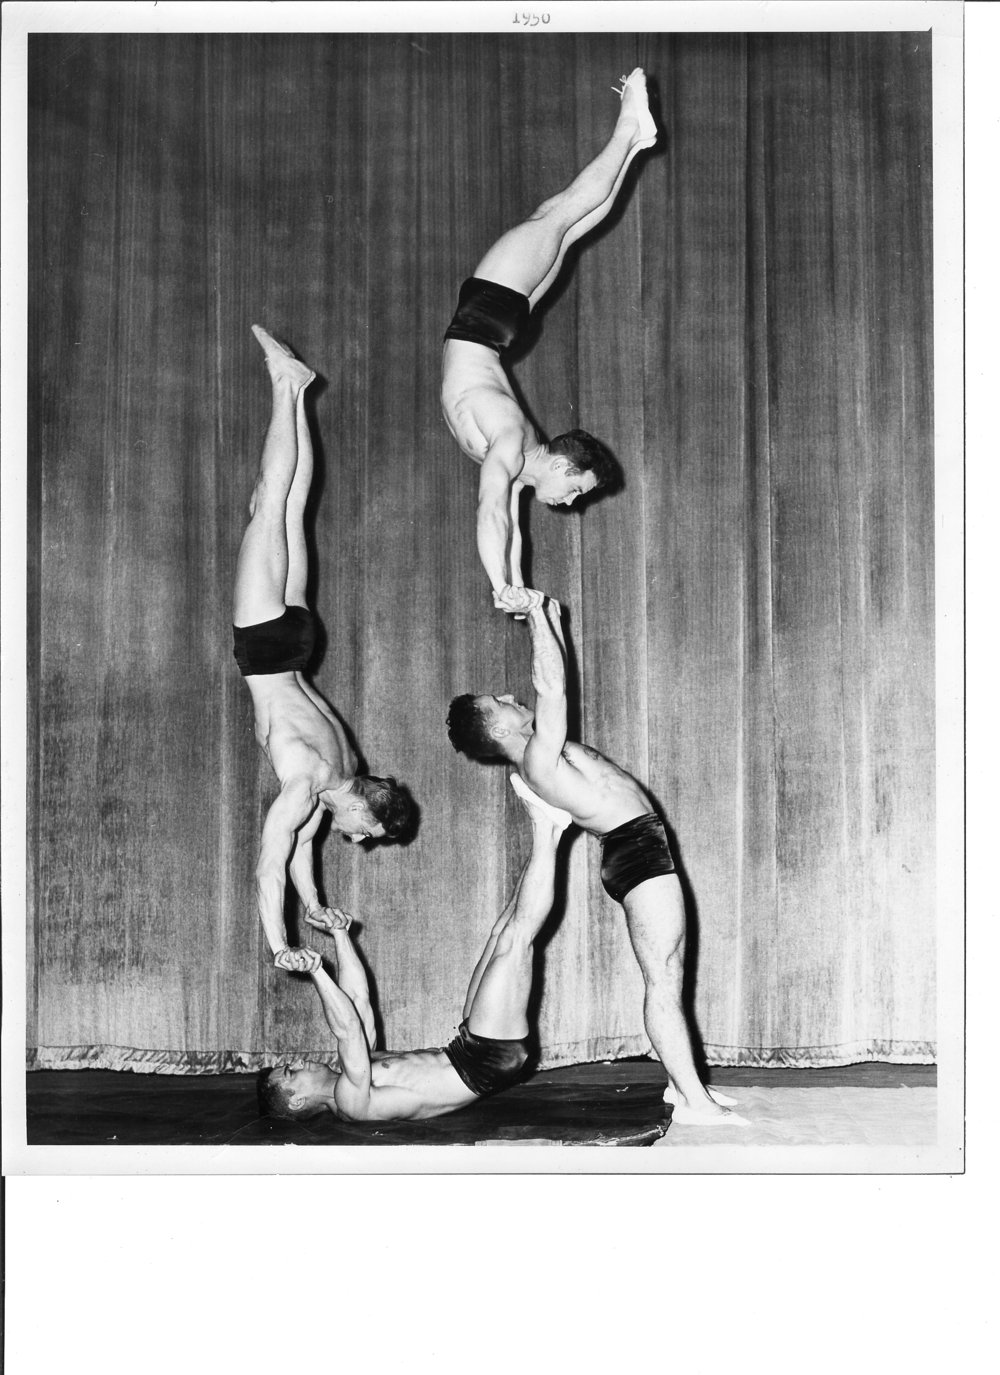 1950 Tom Bolgiano, Harold Buckley, Al Kuckhoff and Chuck Finch.jpg